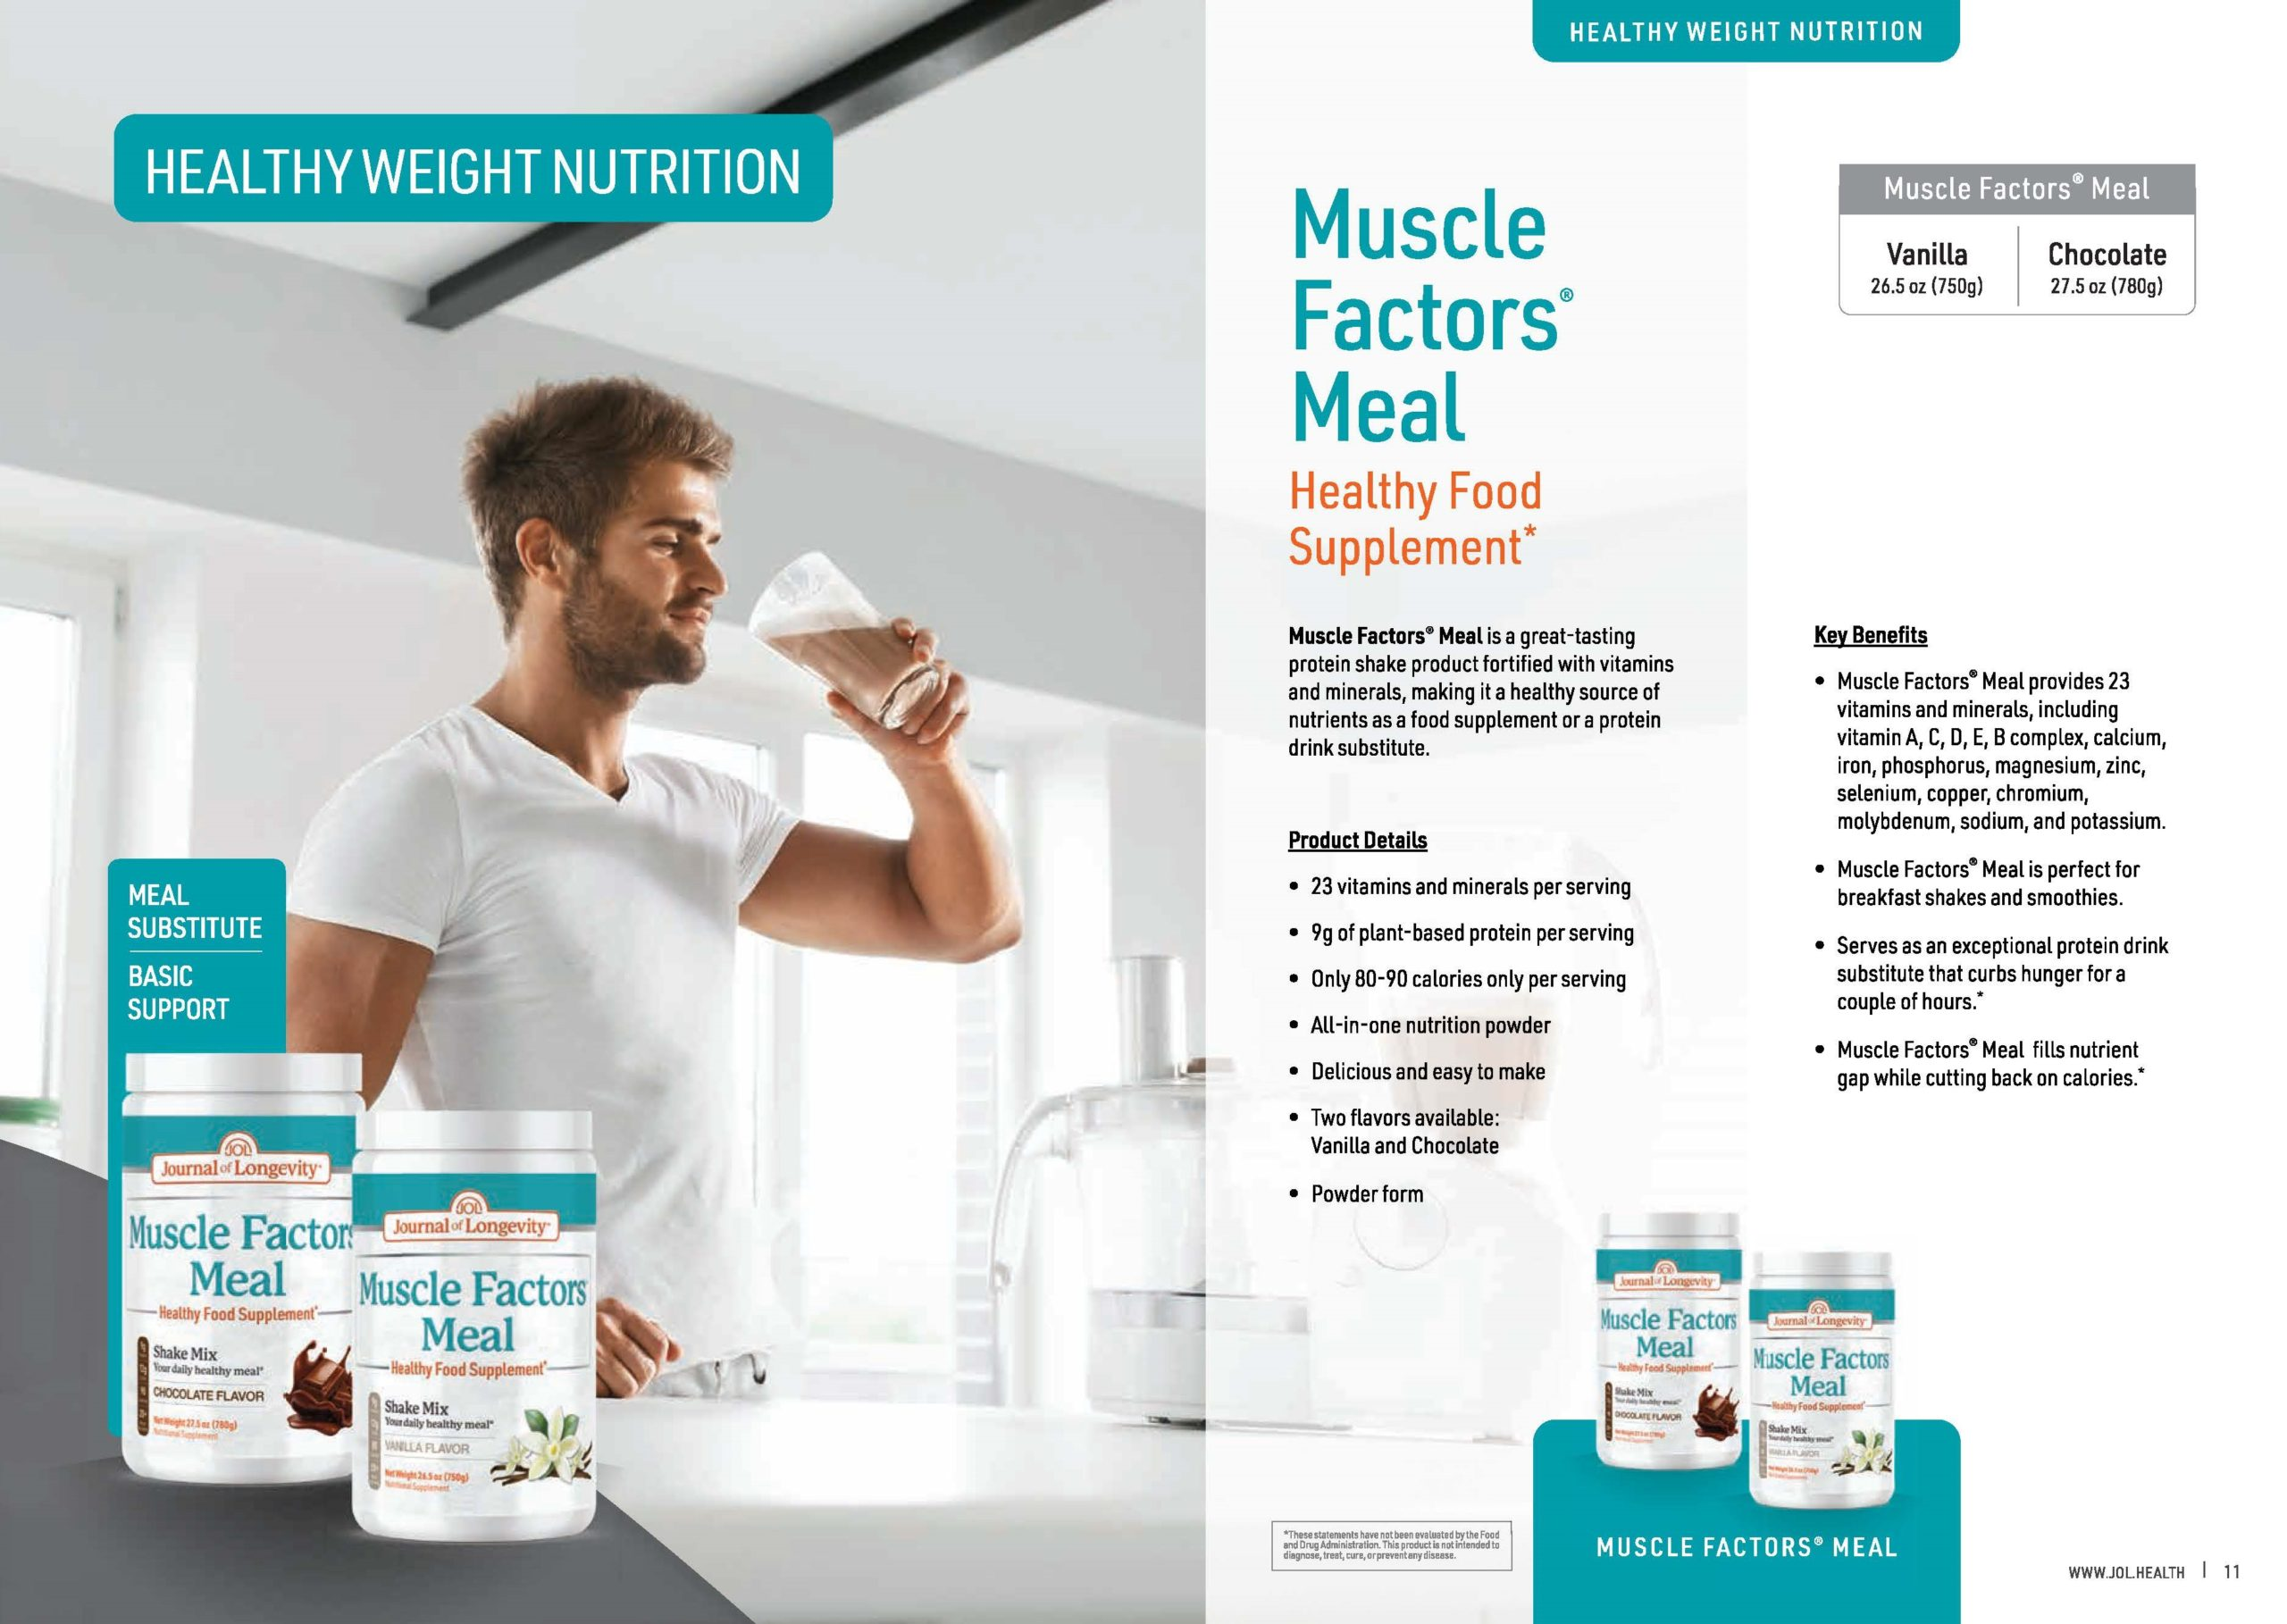 Journal of Longevity Muscle Factors Meal Protein And Meal Supplement With Vitamins